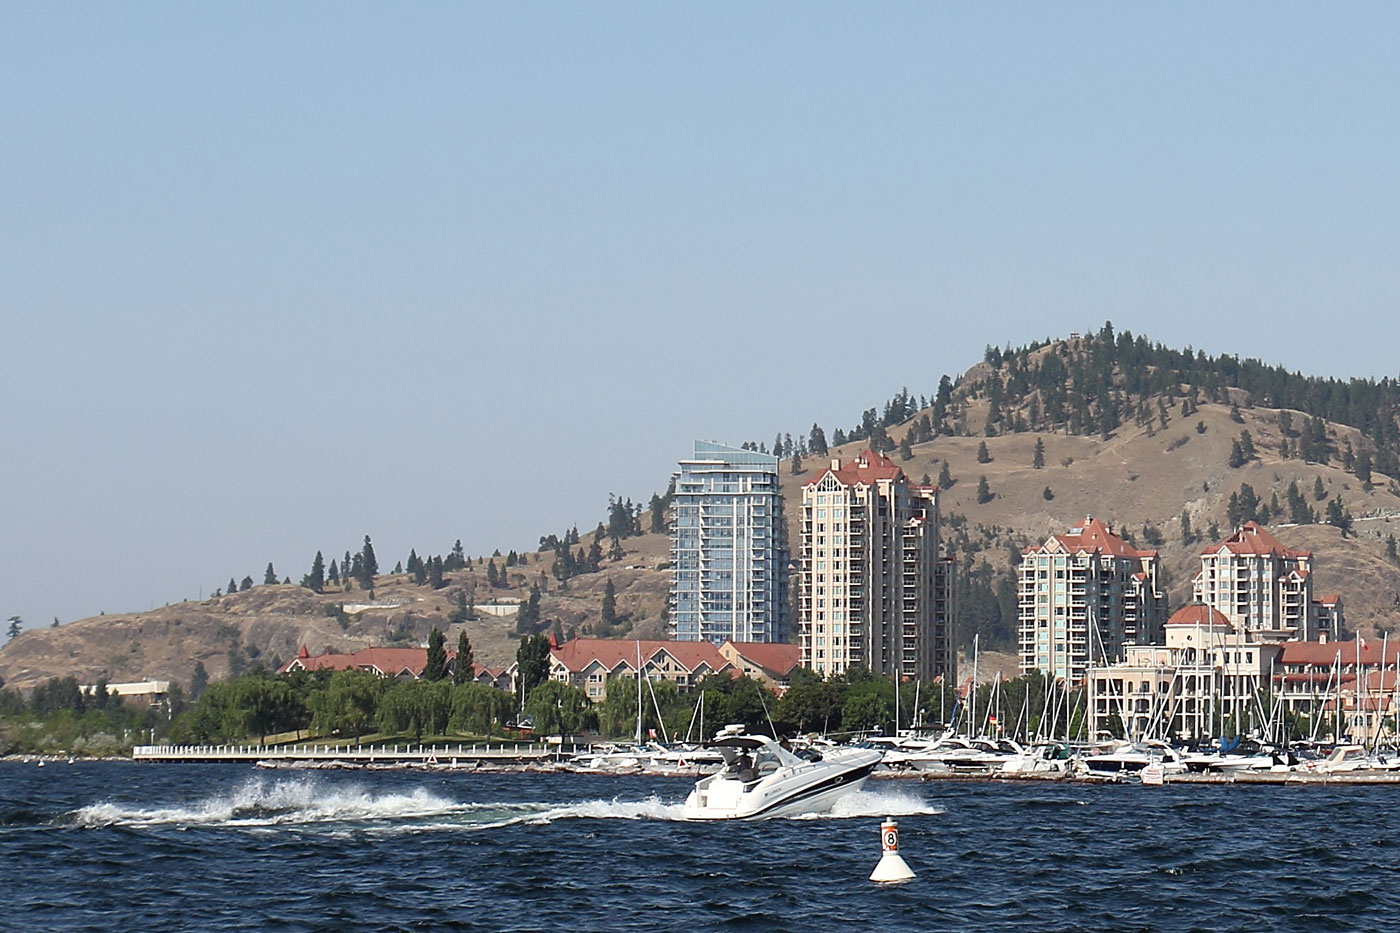 Rent a boat during your next trip to Kelowna and discover the Okanagan from a whole new viewpoint.